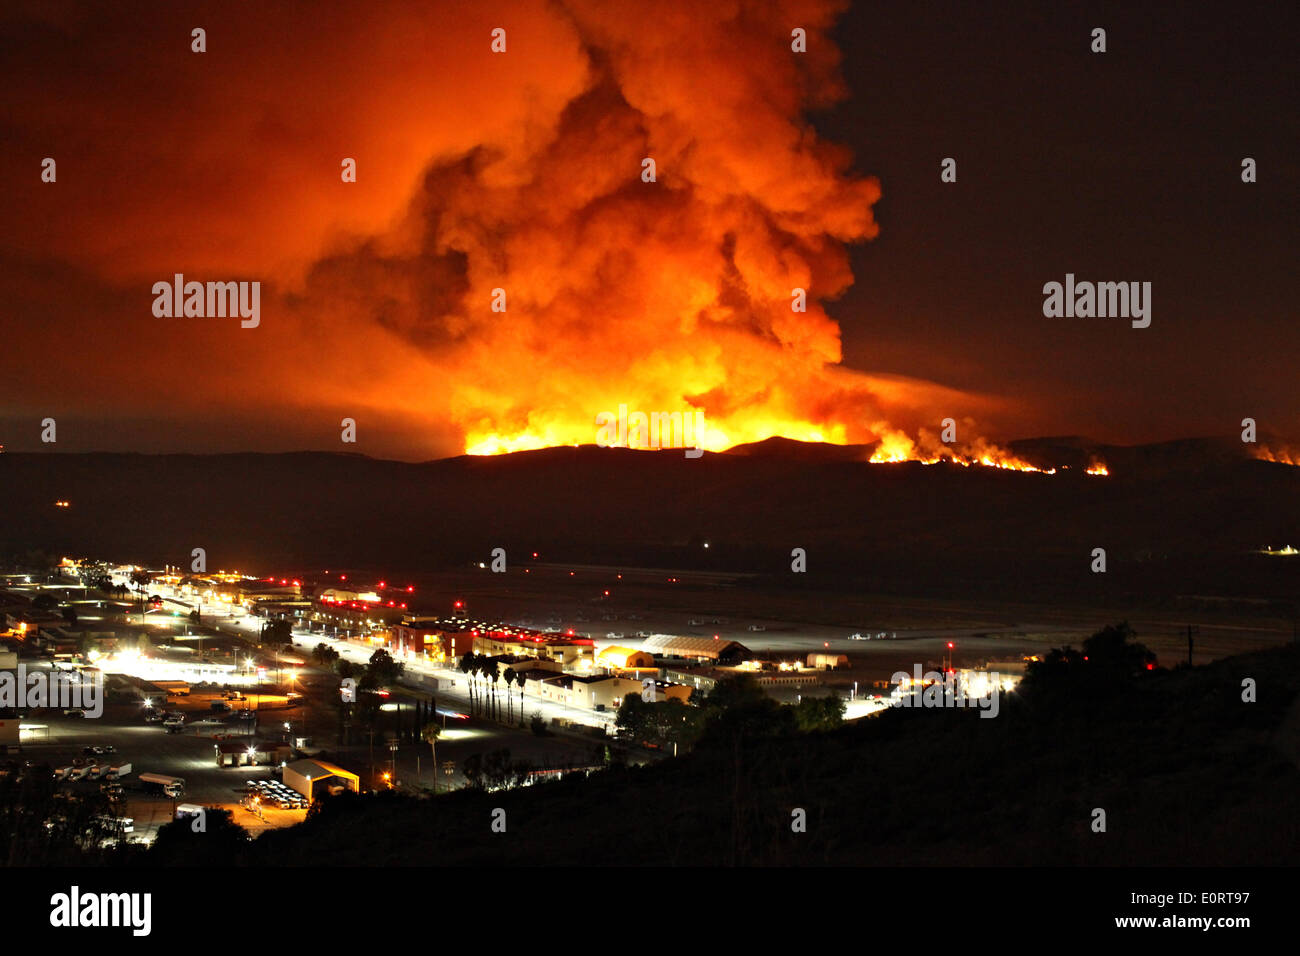 The Las Pulgas and Tomahawk wildfire burns at night in the foothills around the Marine Corps Air Station May 16, 2014 in Camp Pendleton, California. - Stock Image